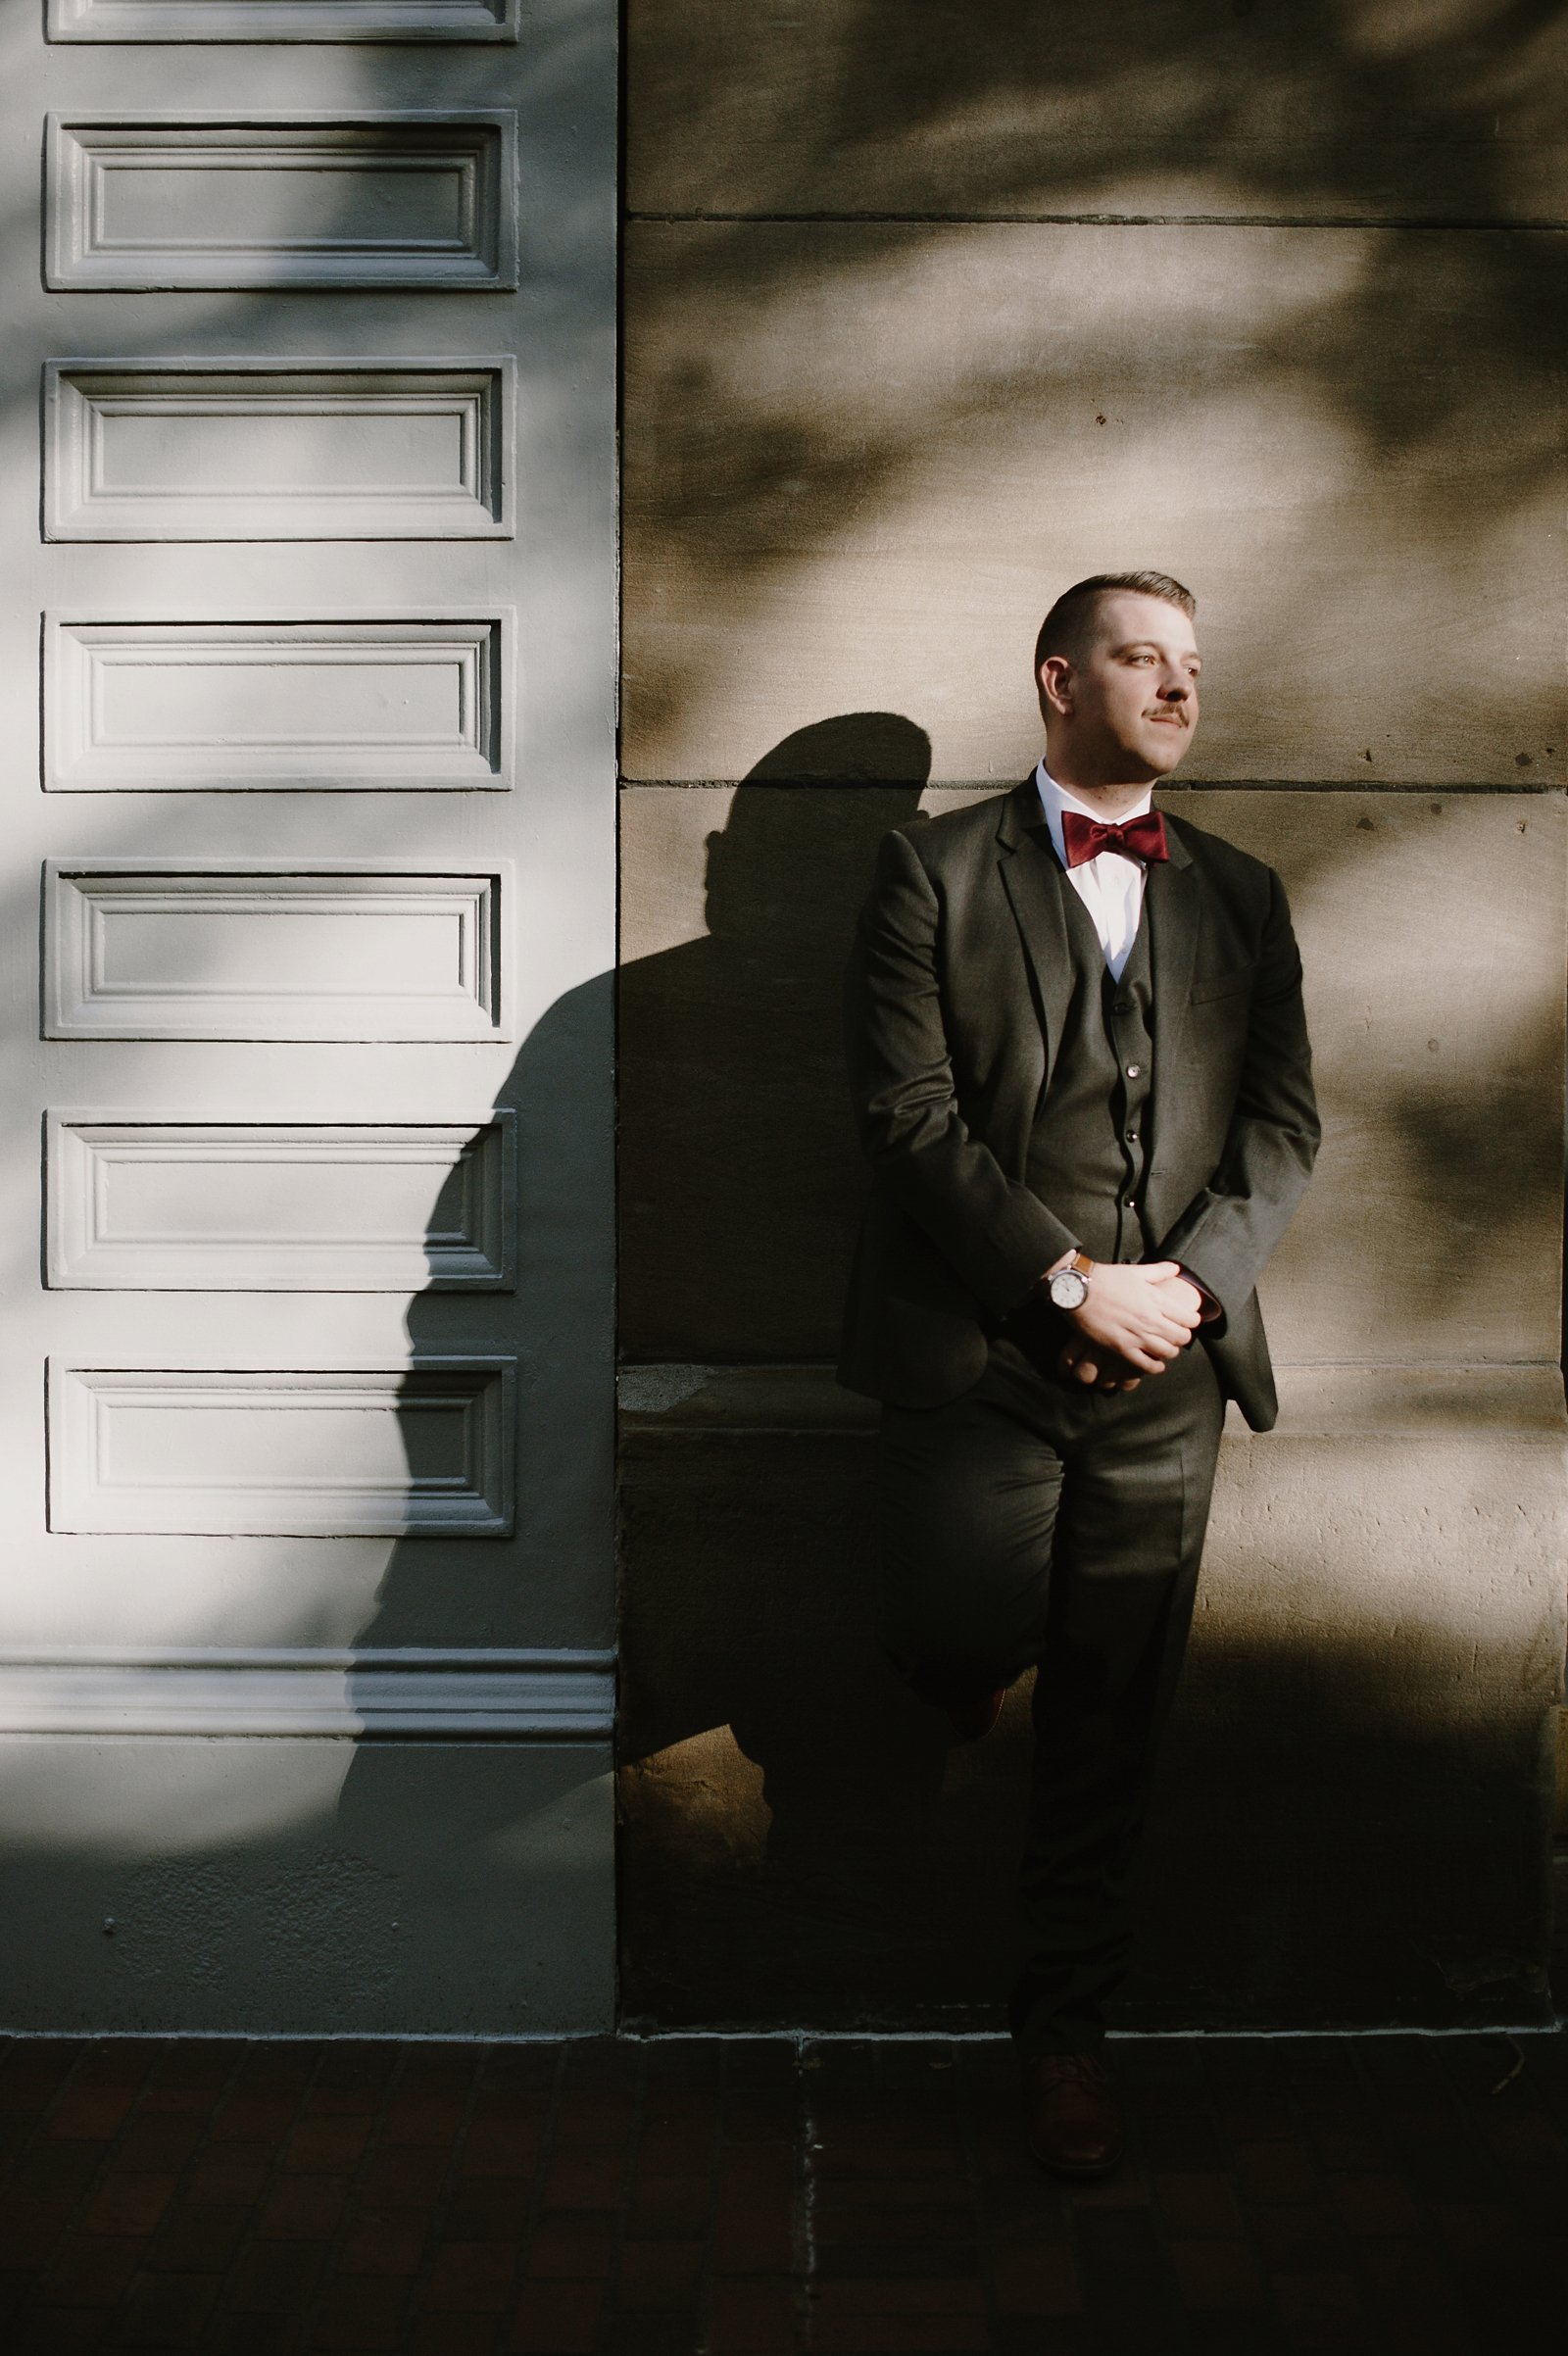 Downtown_Seattle_Wedding_Foundry_Sinclair_Moore050.JPG